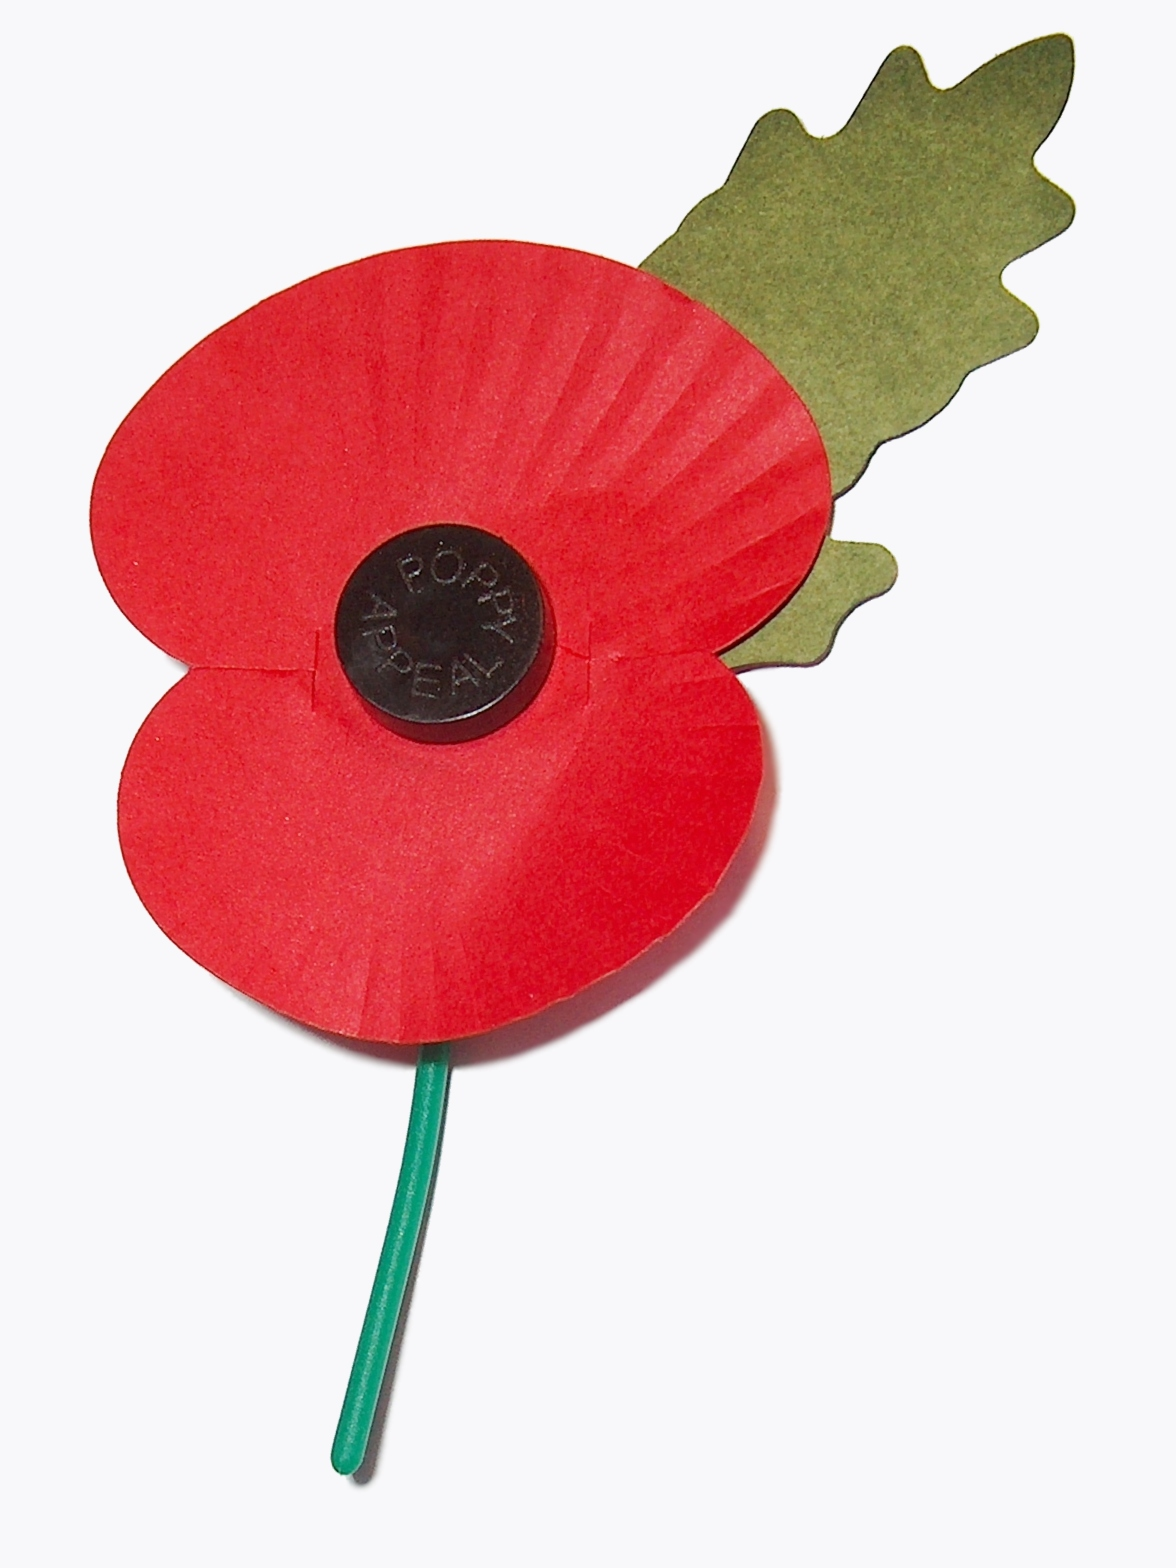 Red Poppy Symbol Choice Image Meaning Of Text Symbols